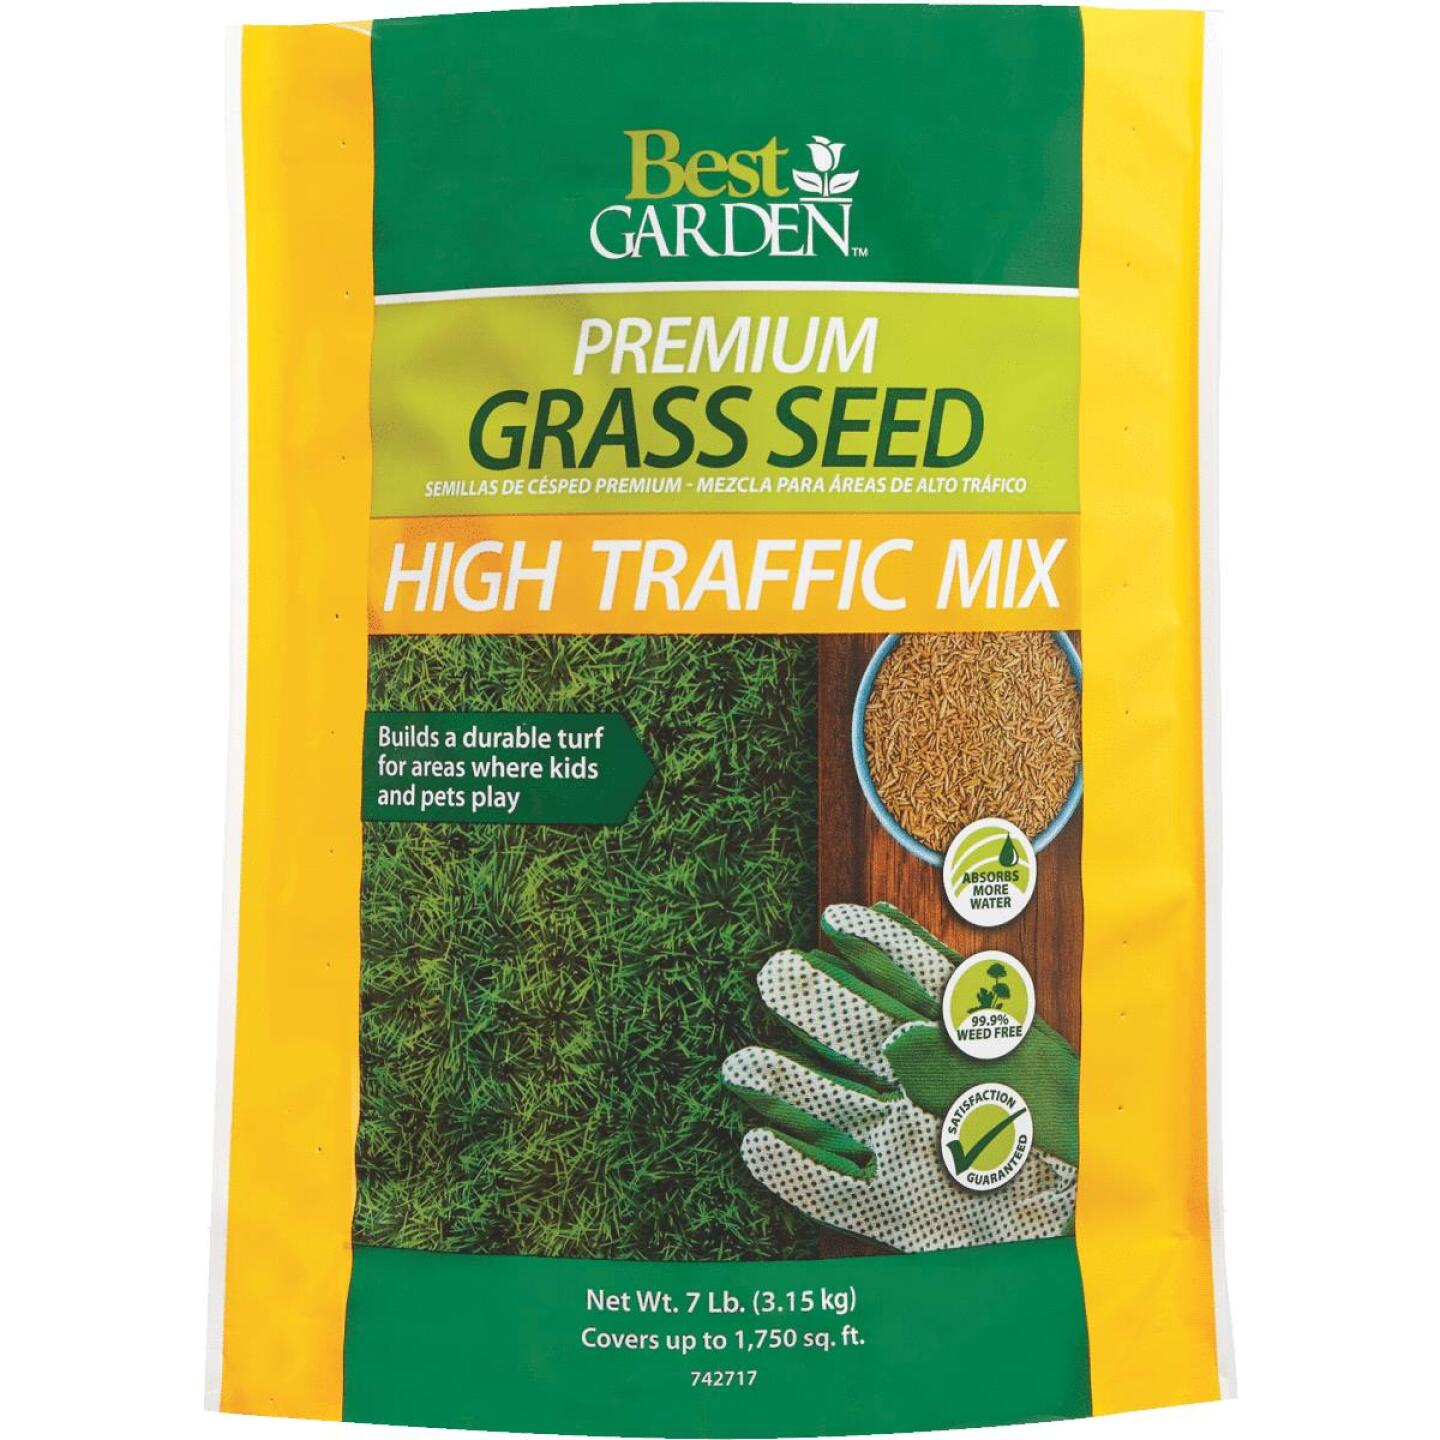 Best Garden 7 Lb. 3000 Sq. Ft. Coverage High Traffic Grass Seed Image 1